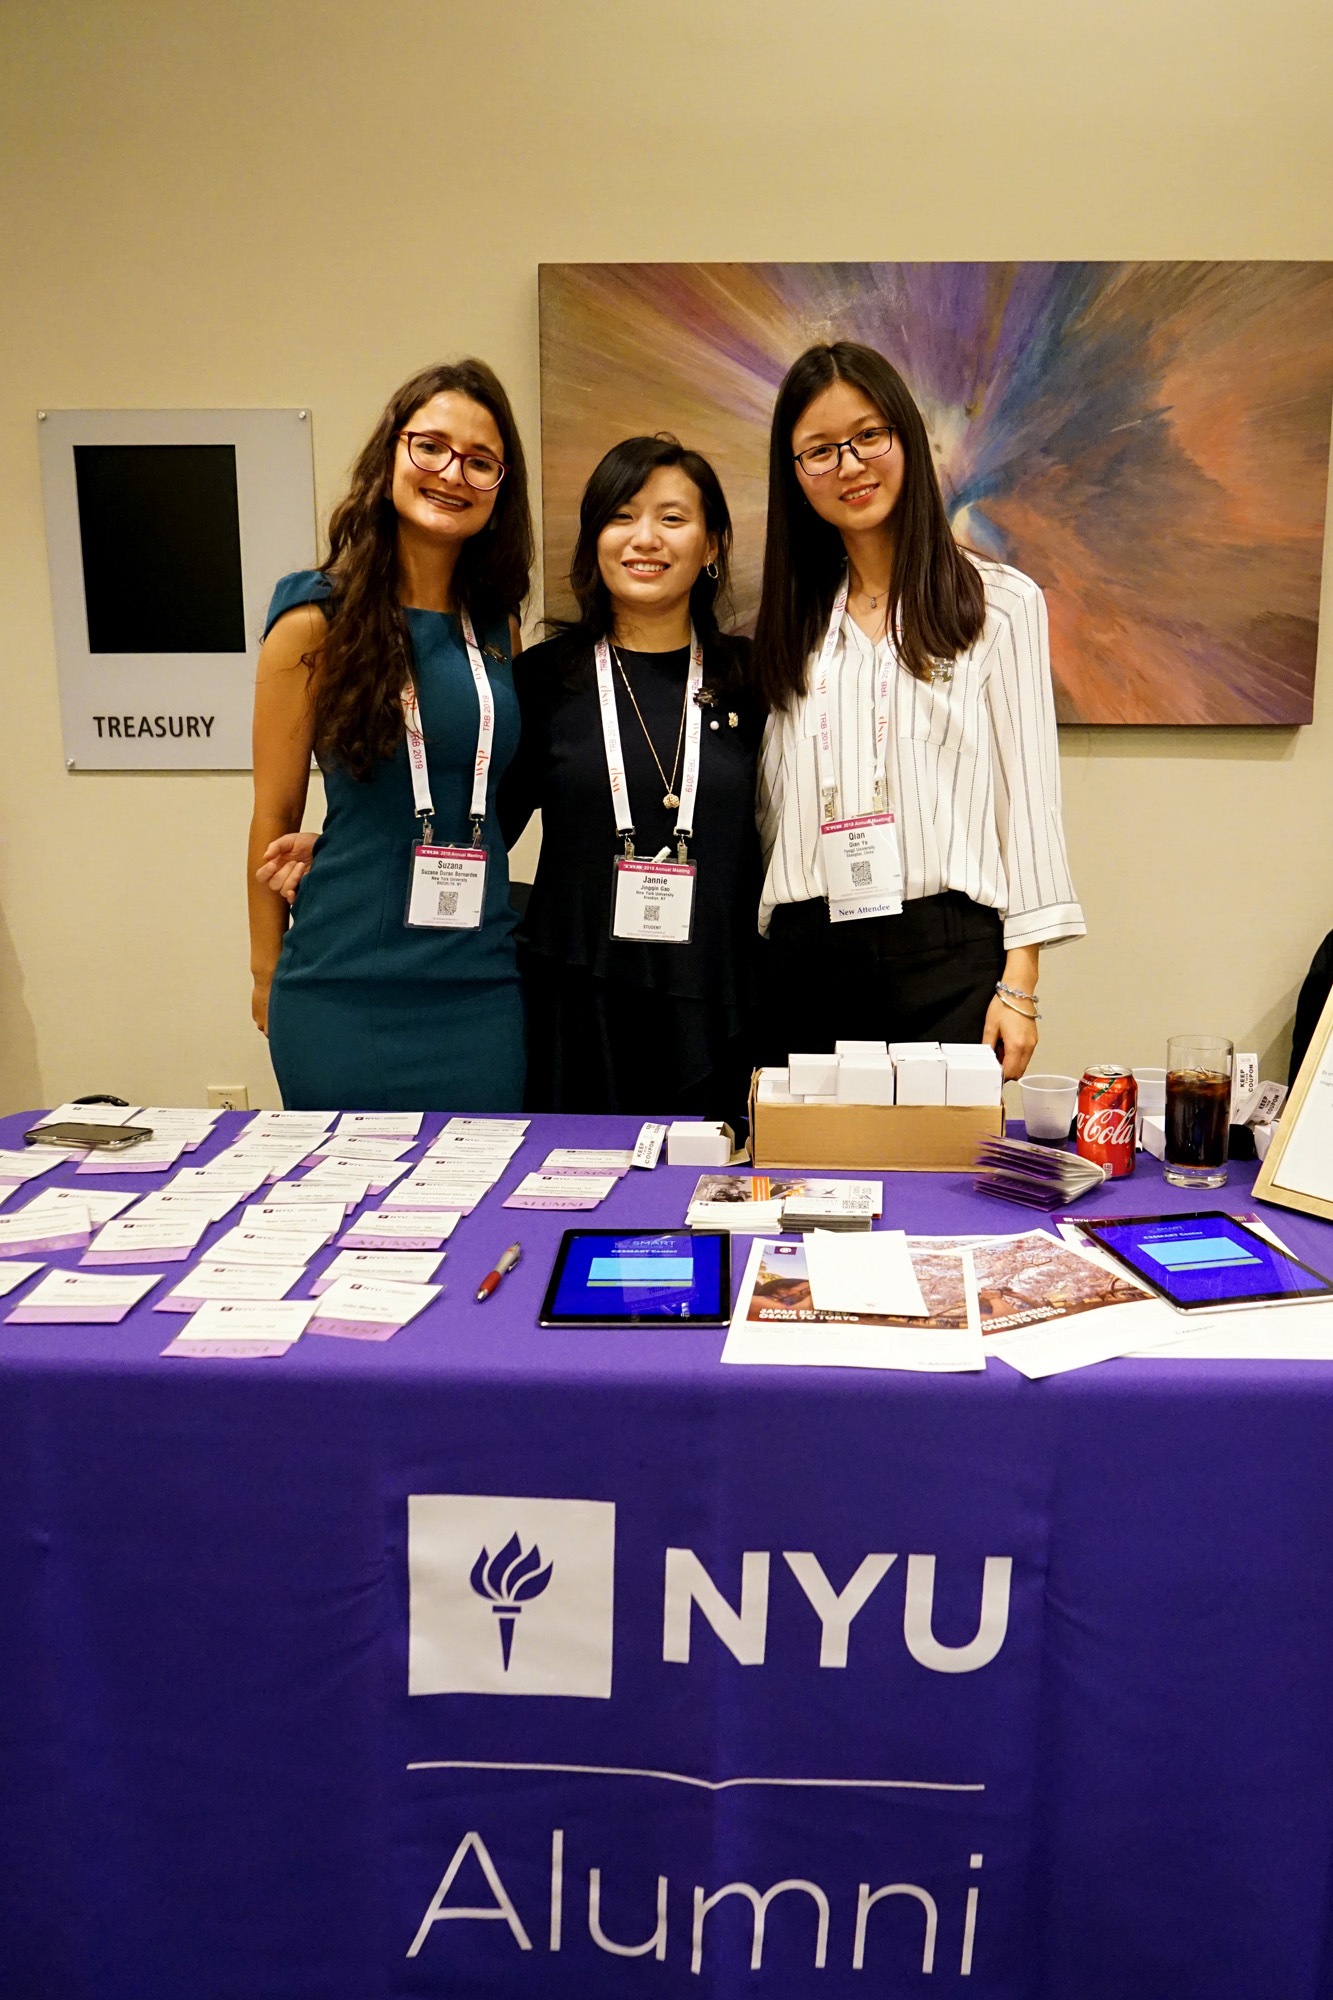 Students Suzana Duran-Bernardes, Jingqin Gao and Qian Ye pose for a picture outside the NYU/C2SMART reception at TRB.